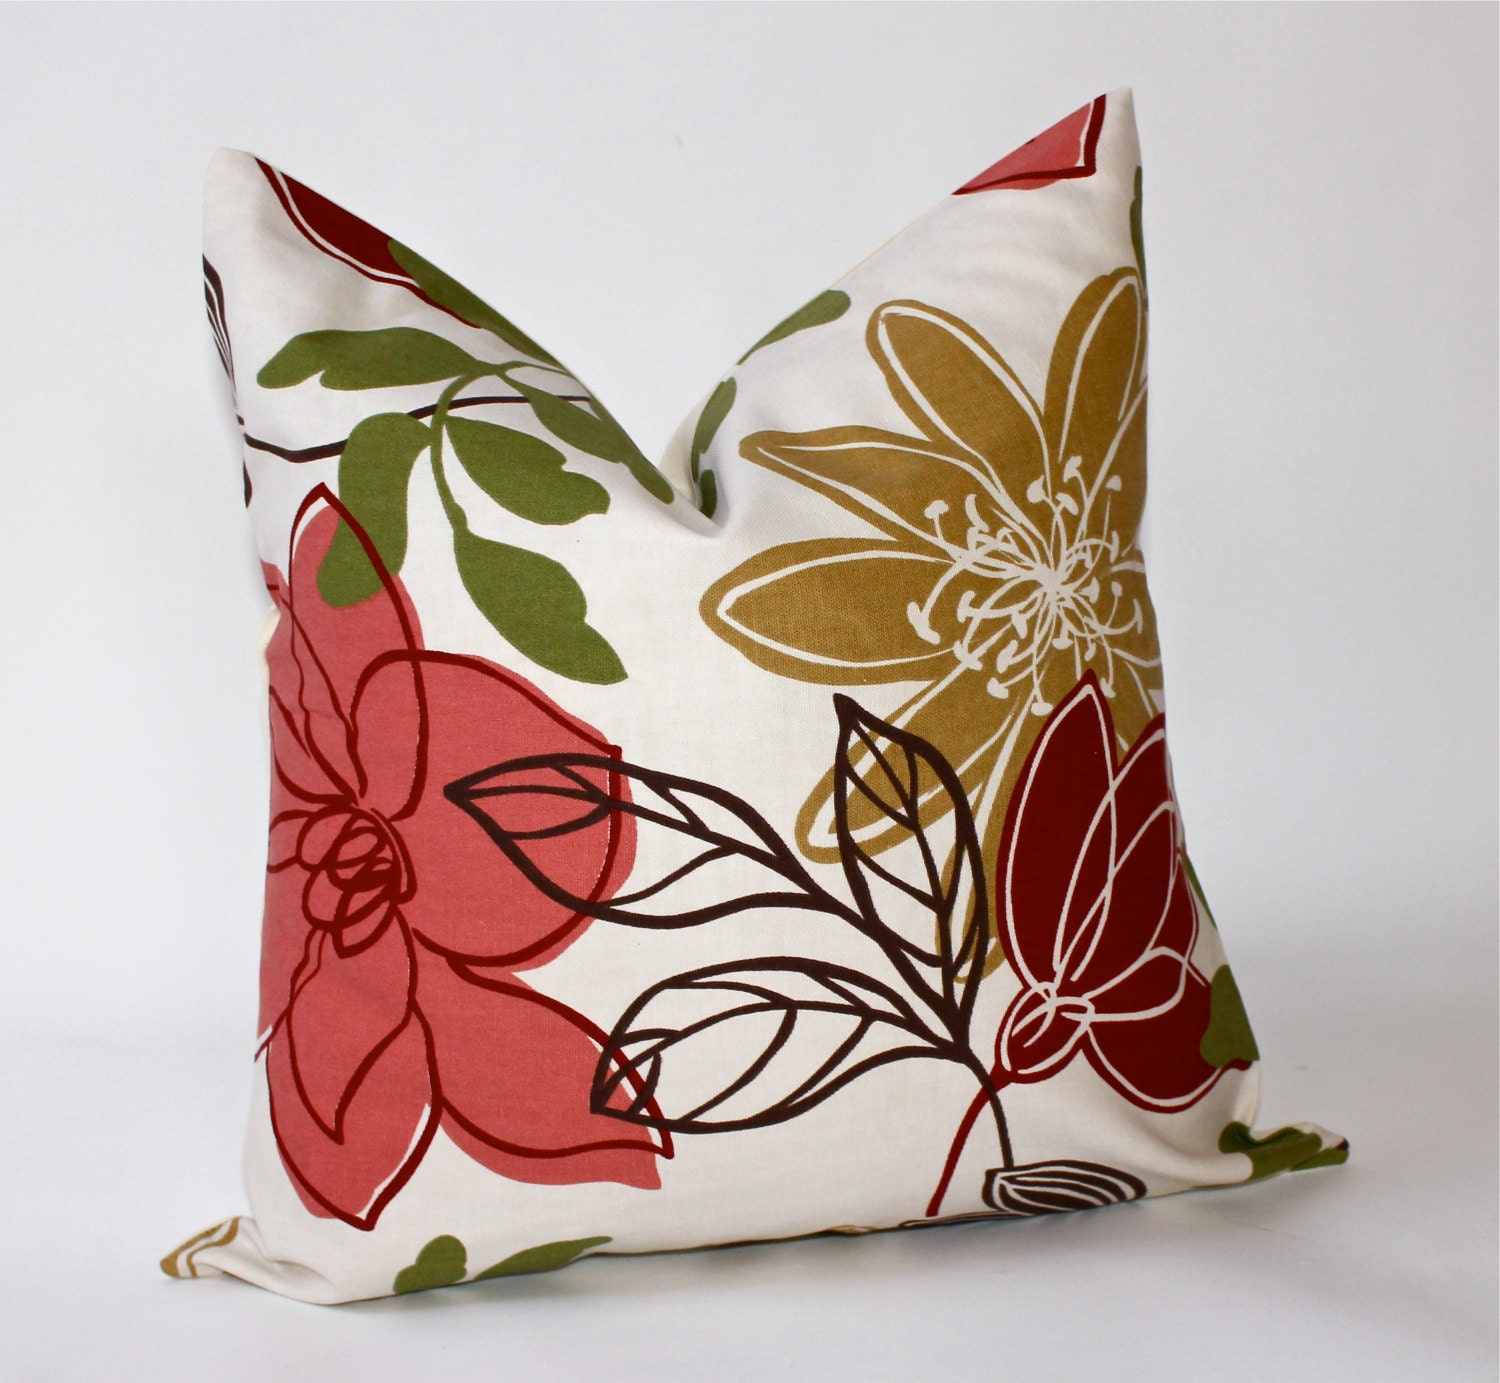 Throw Pillow Covers 18 Inches : 18 x 18 inch Decorative Pillow Cover Multi by ThePillowPalette